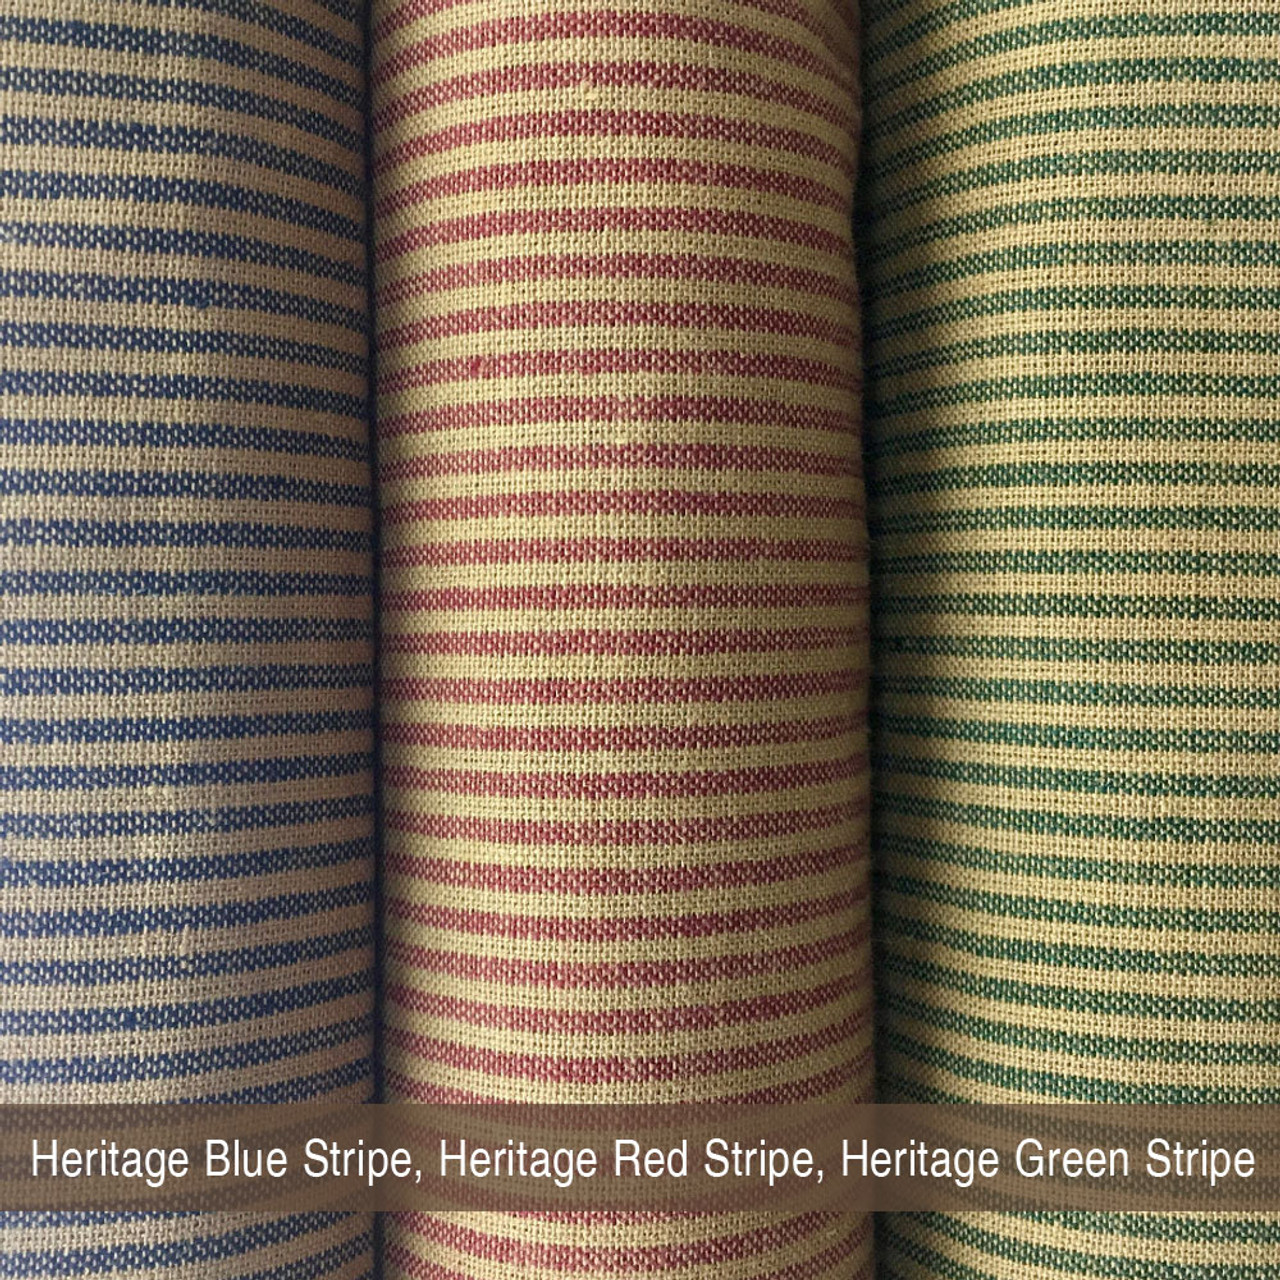 Heritage Green Stripe Homespun Cotton Fabric